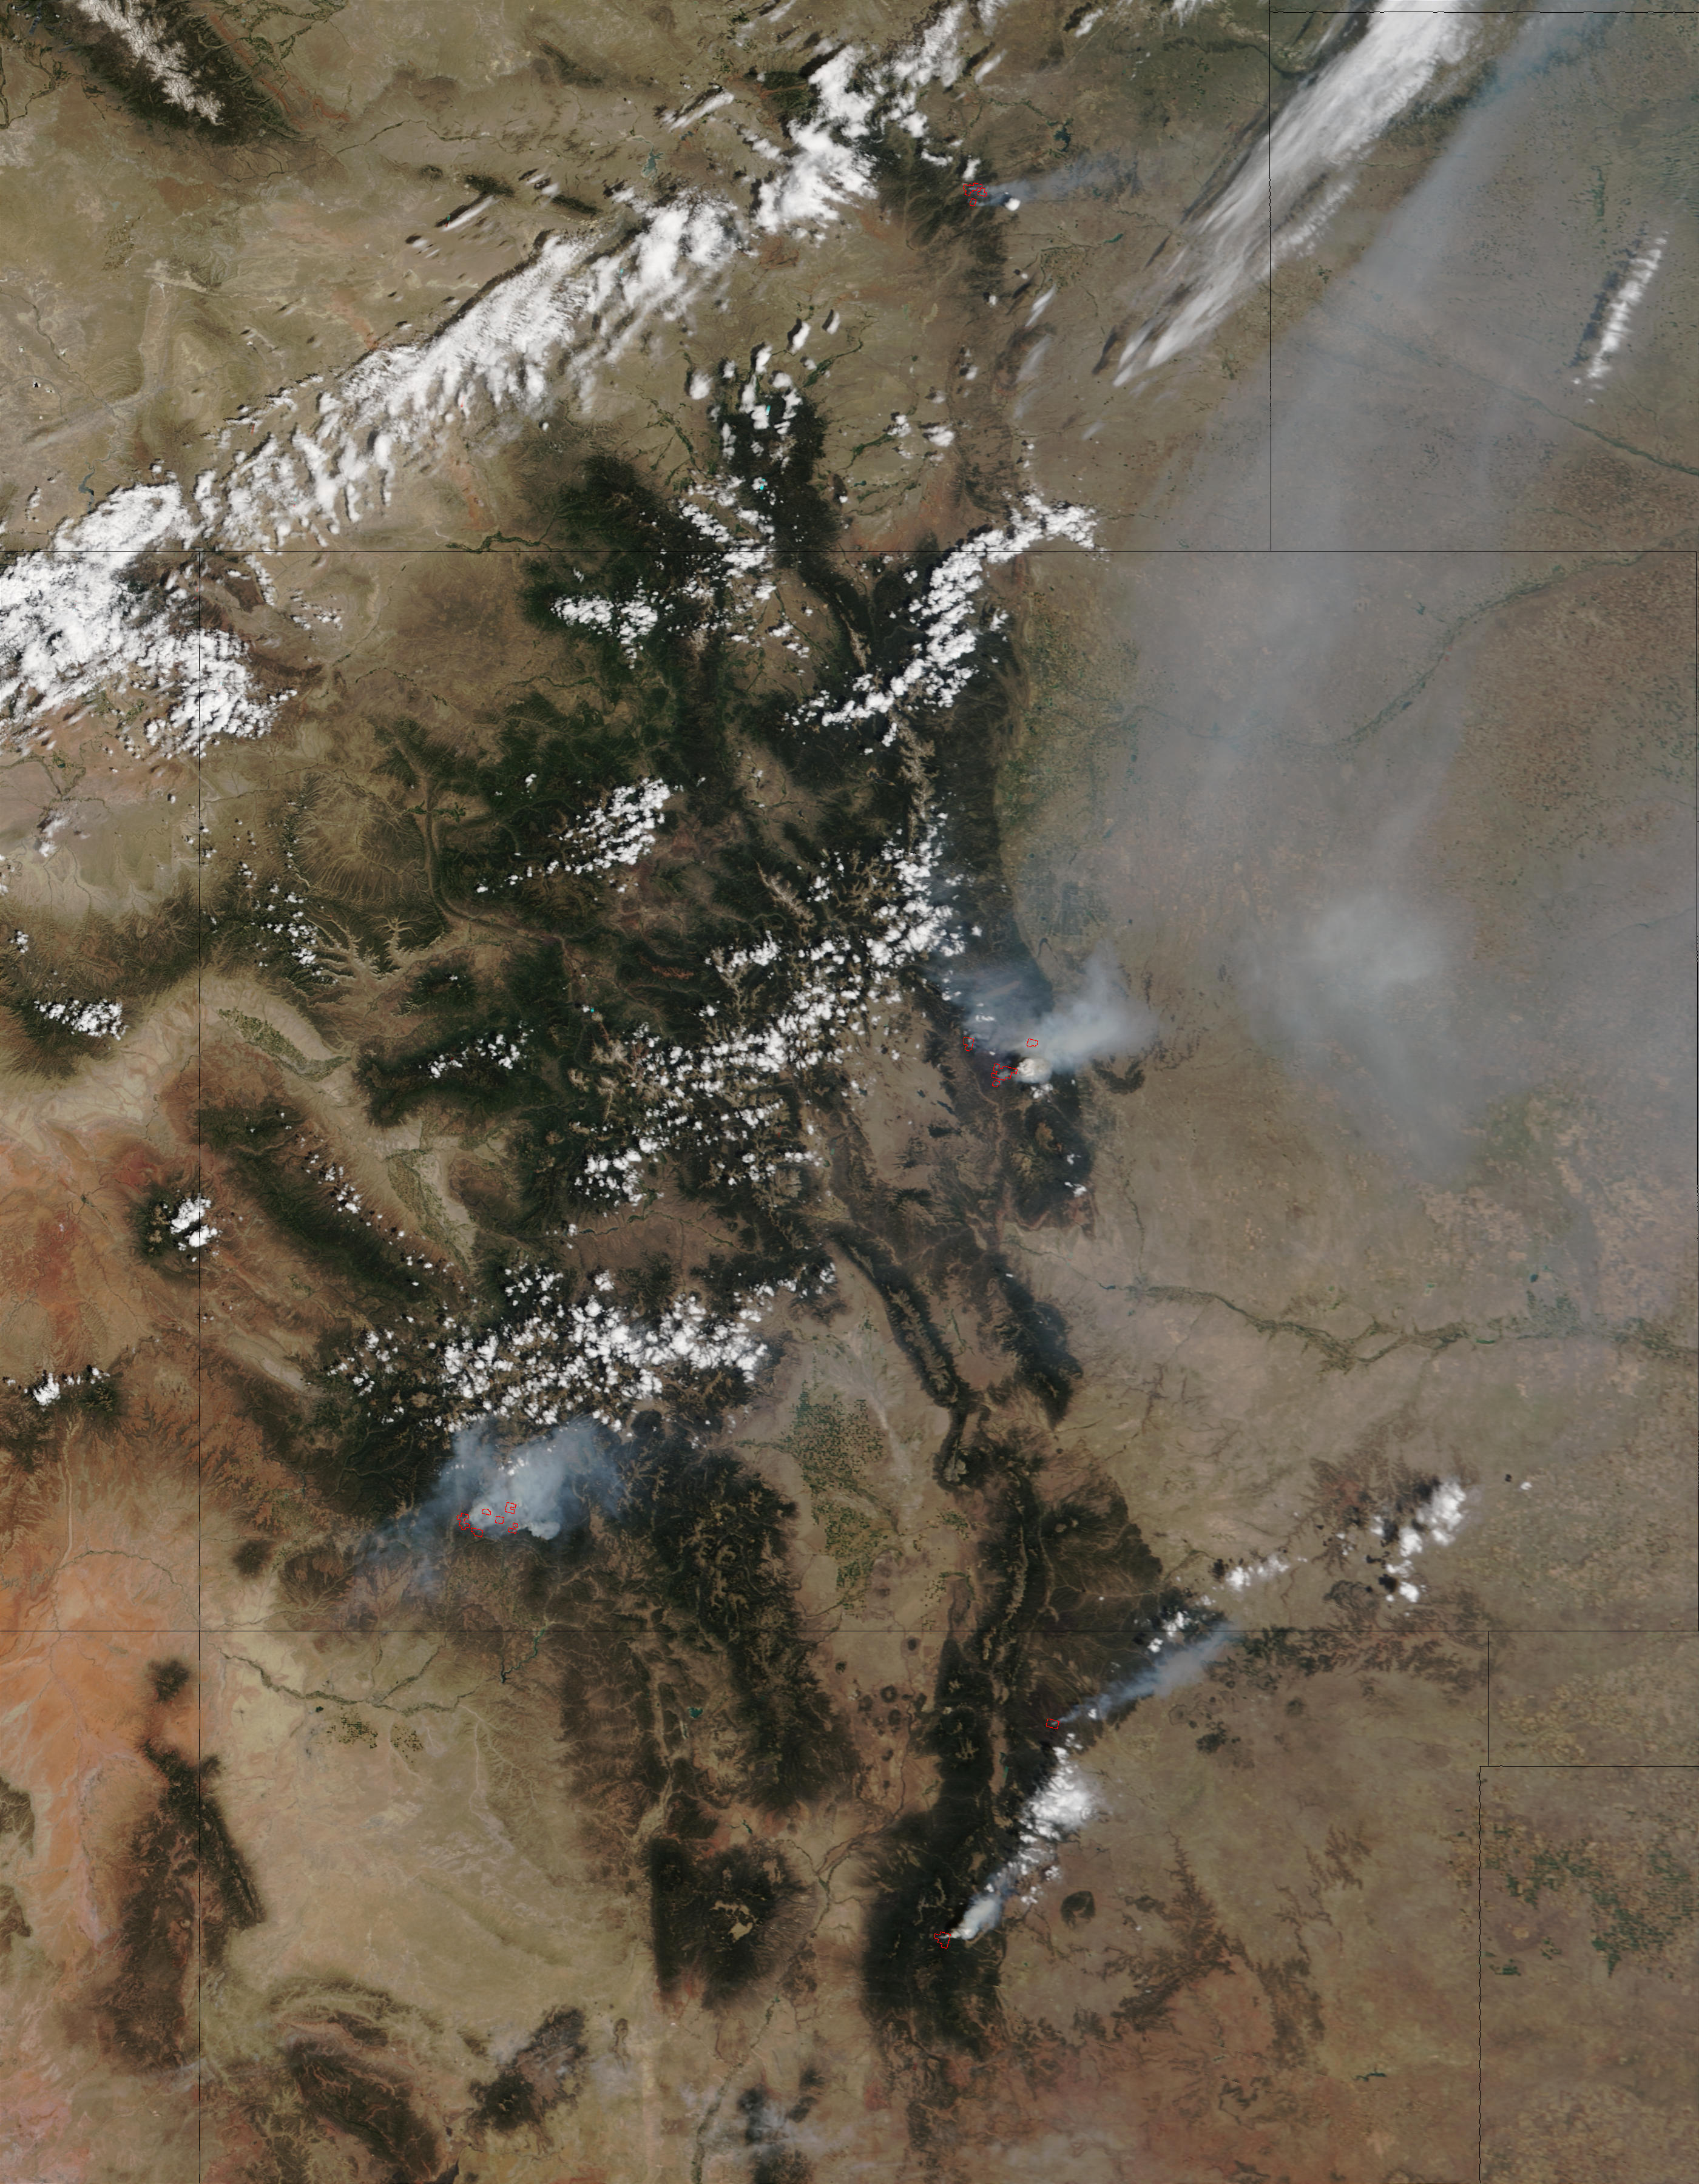 Wildfires in Colorado and New Mexico